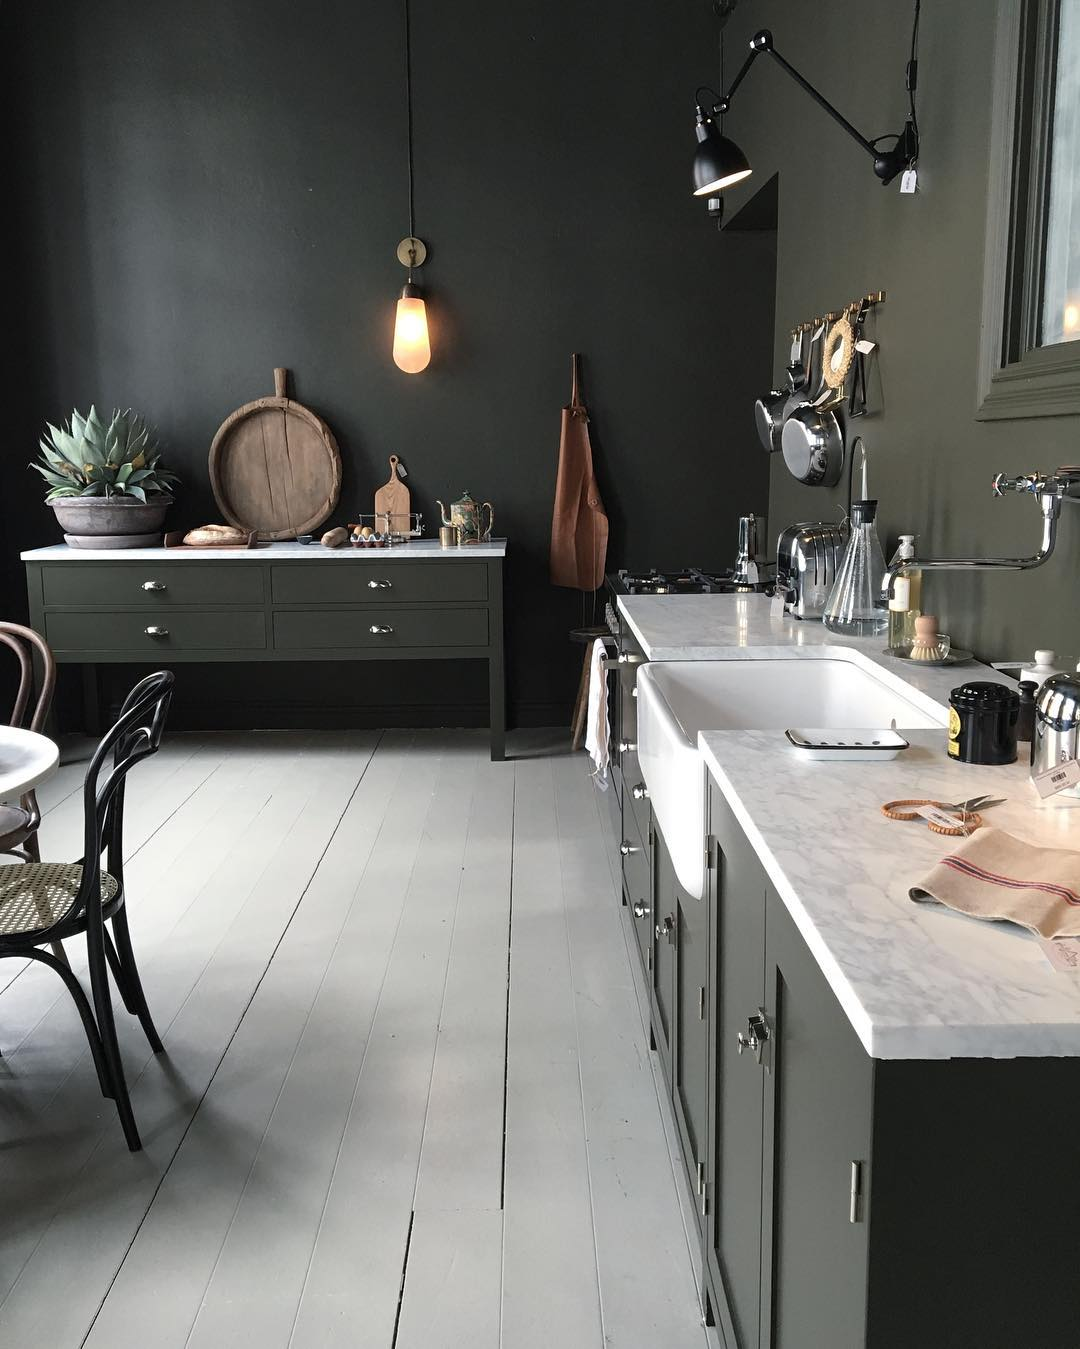 Olive Green Kitchen Decor: MAN MAN Wooninspiratie #37